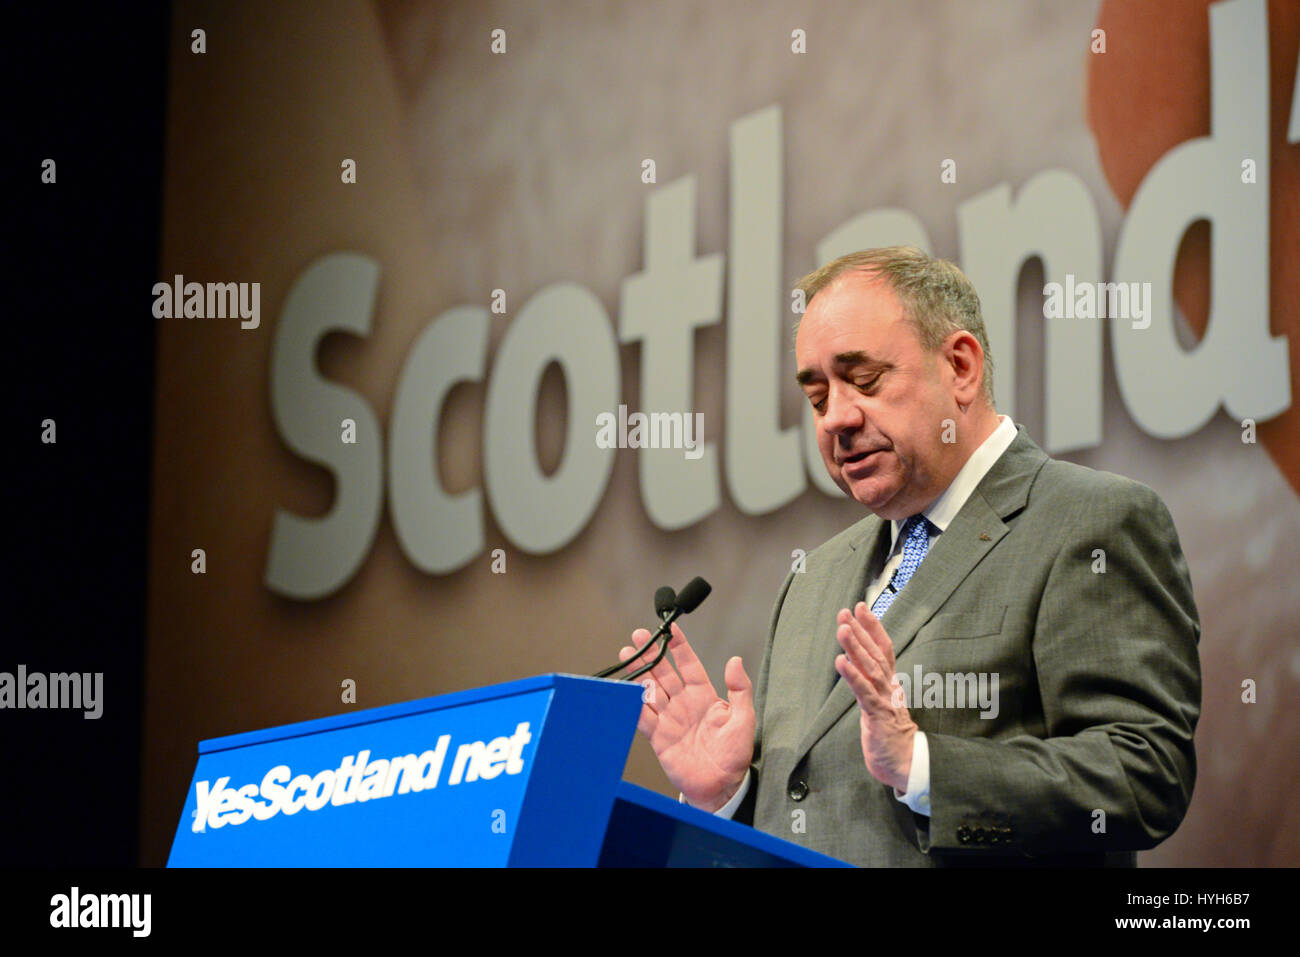 Scotland's First Minister Alex Salmond speaking at a Yes Scotland international media conference in Edinburgh, - Stock Image